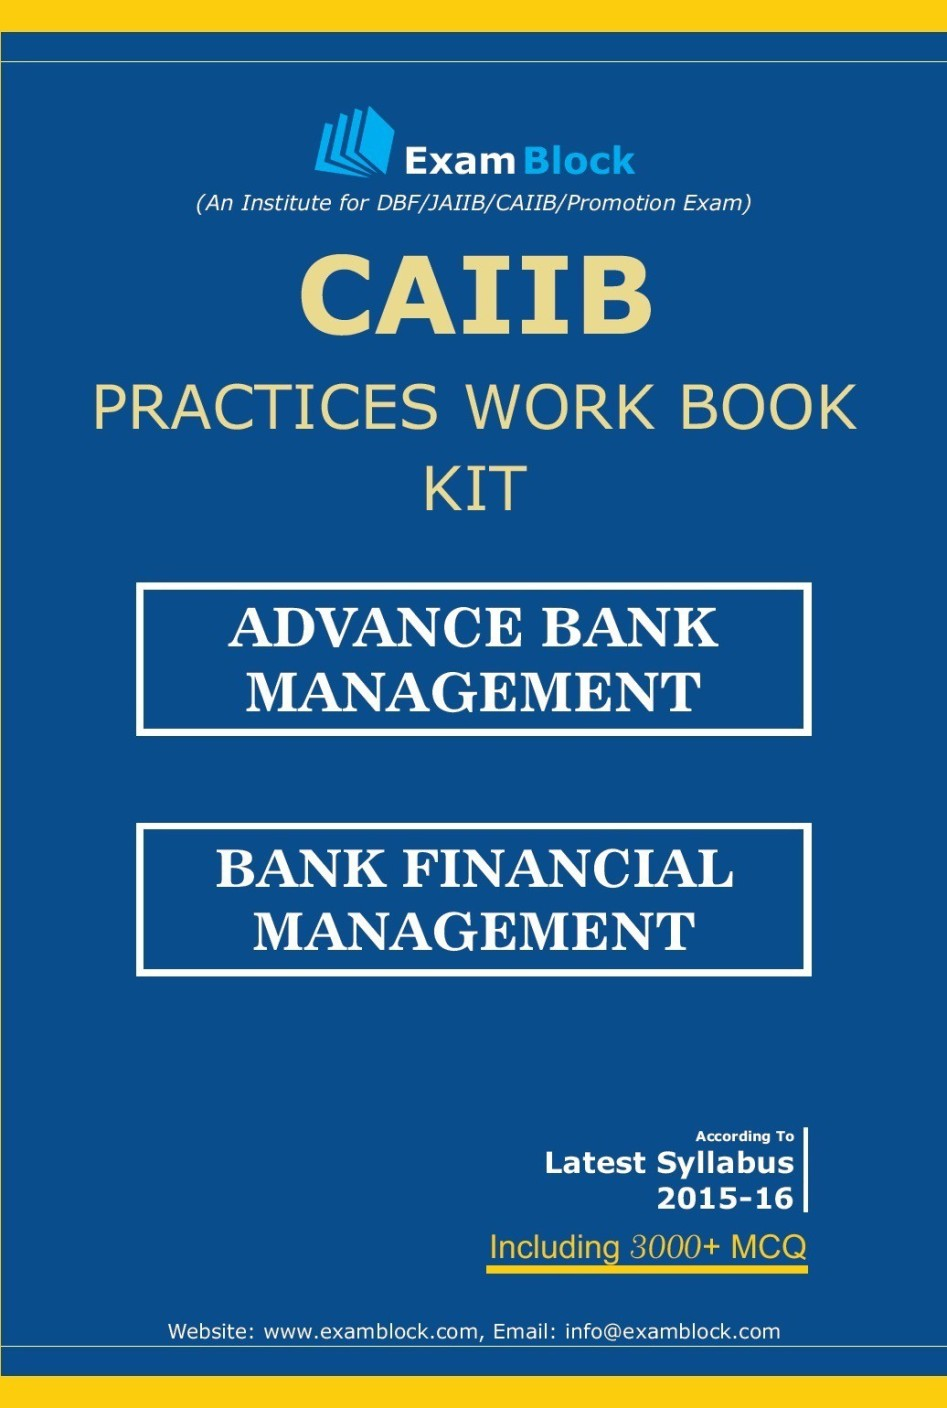 Workbooks jaiib workbook : CAIIB Practices Work Book Kit - Hardcopy Price in India - Buy ...